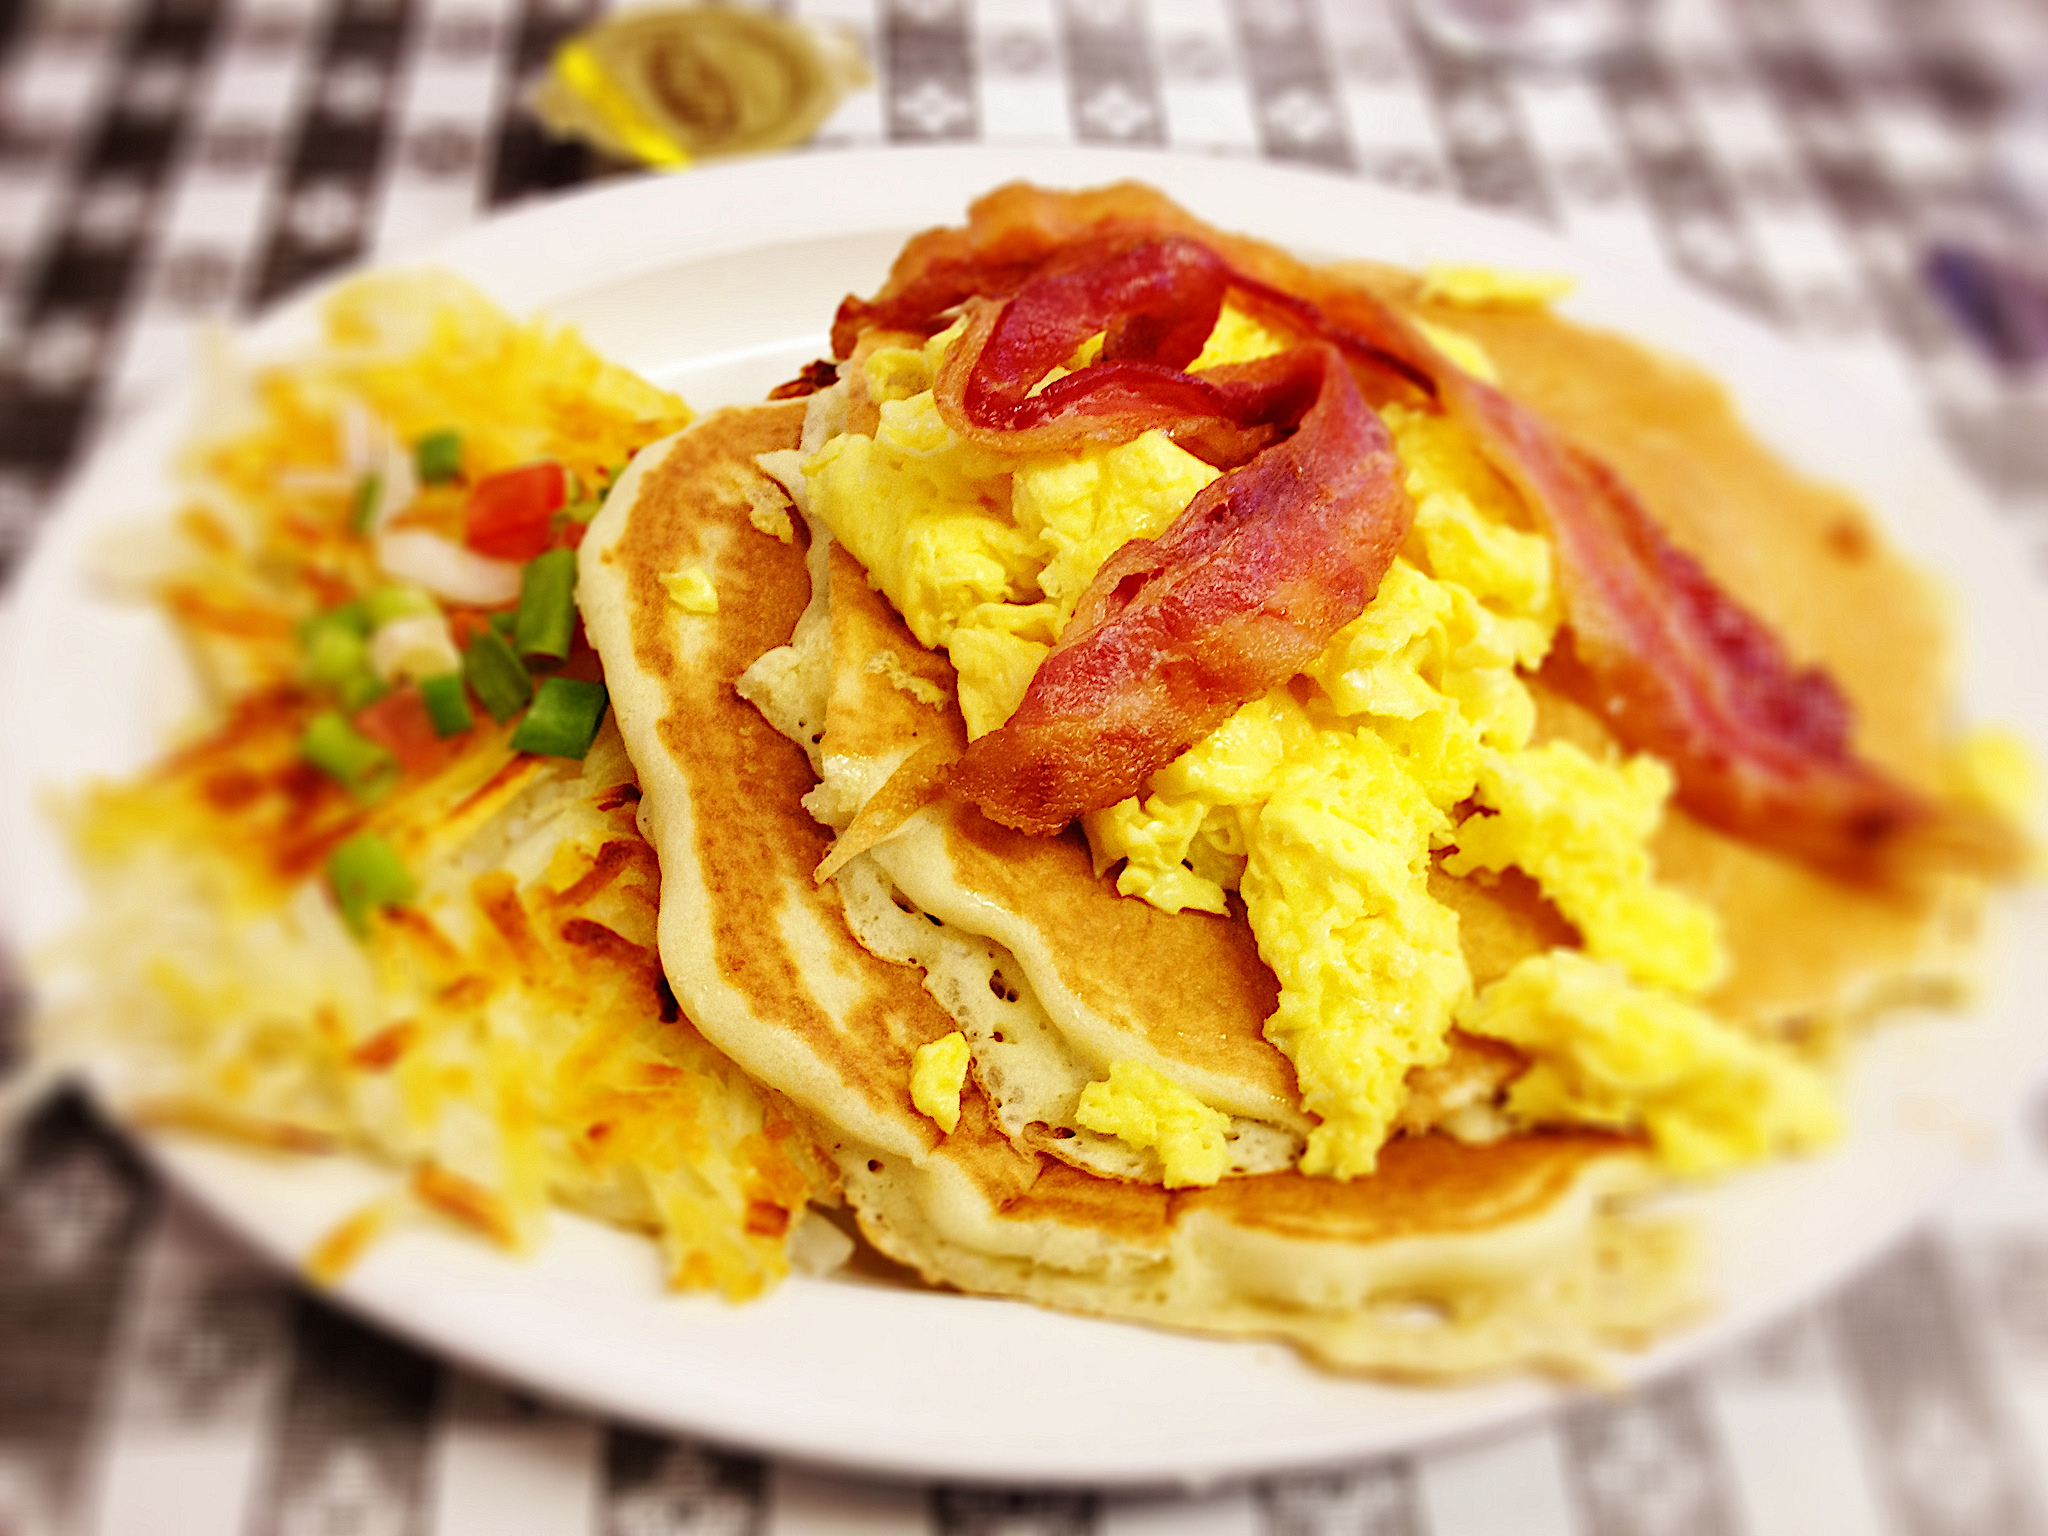 pancake and bacon breakfast - photo #26